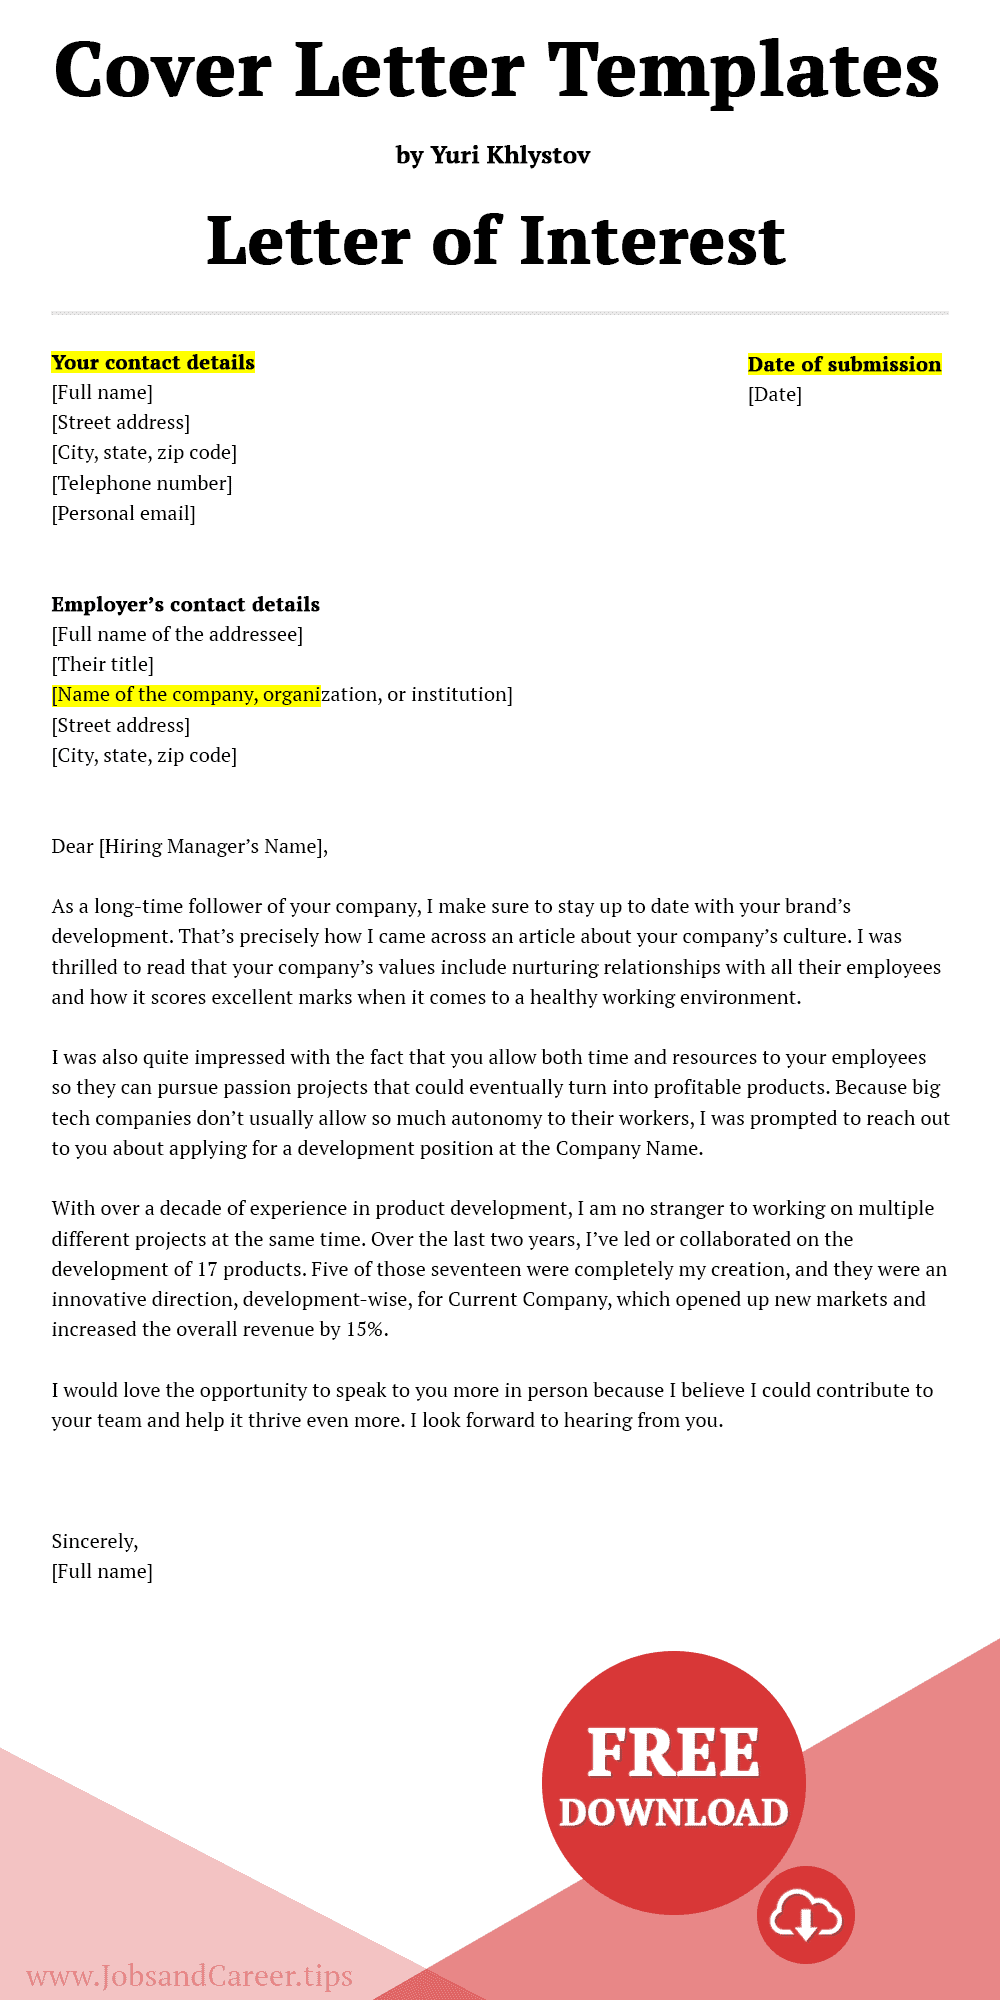 Click to download resignation letter due to retirement template Word document.